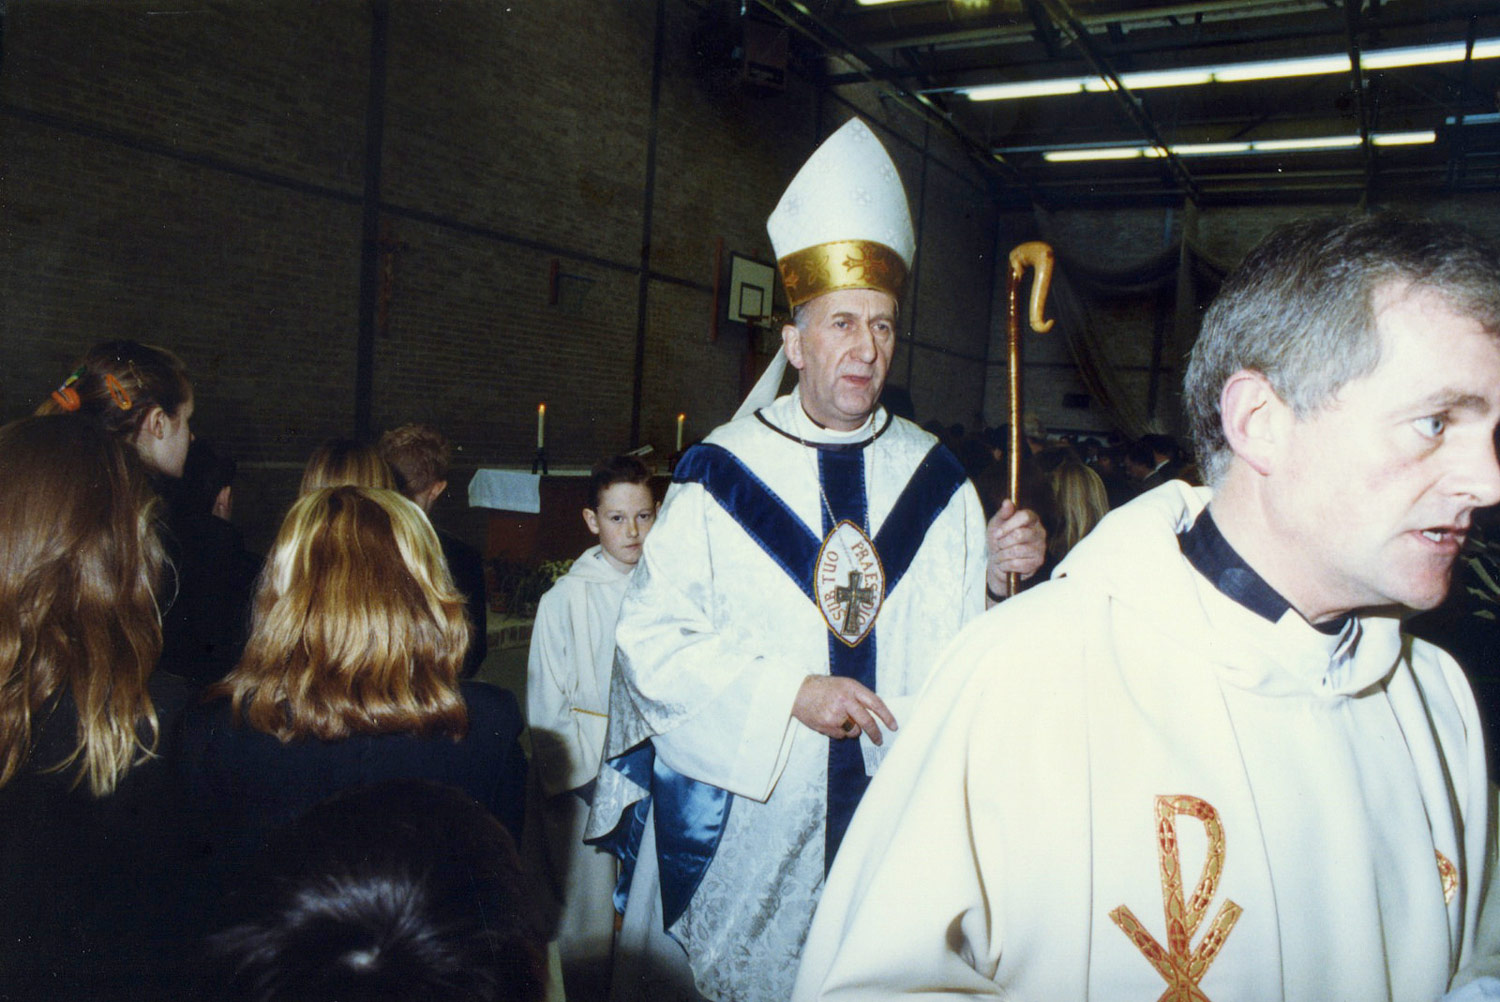 Photo: Bishop David Konstant at St. Mary's Menston Silver Jubilee Mass, 1989